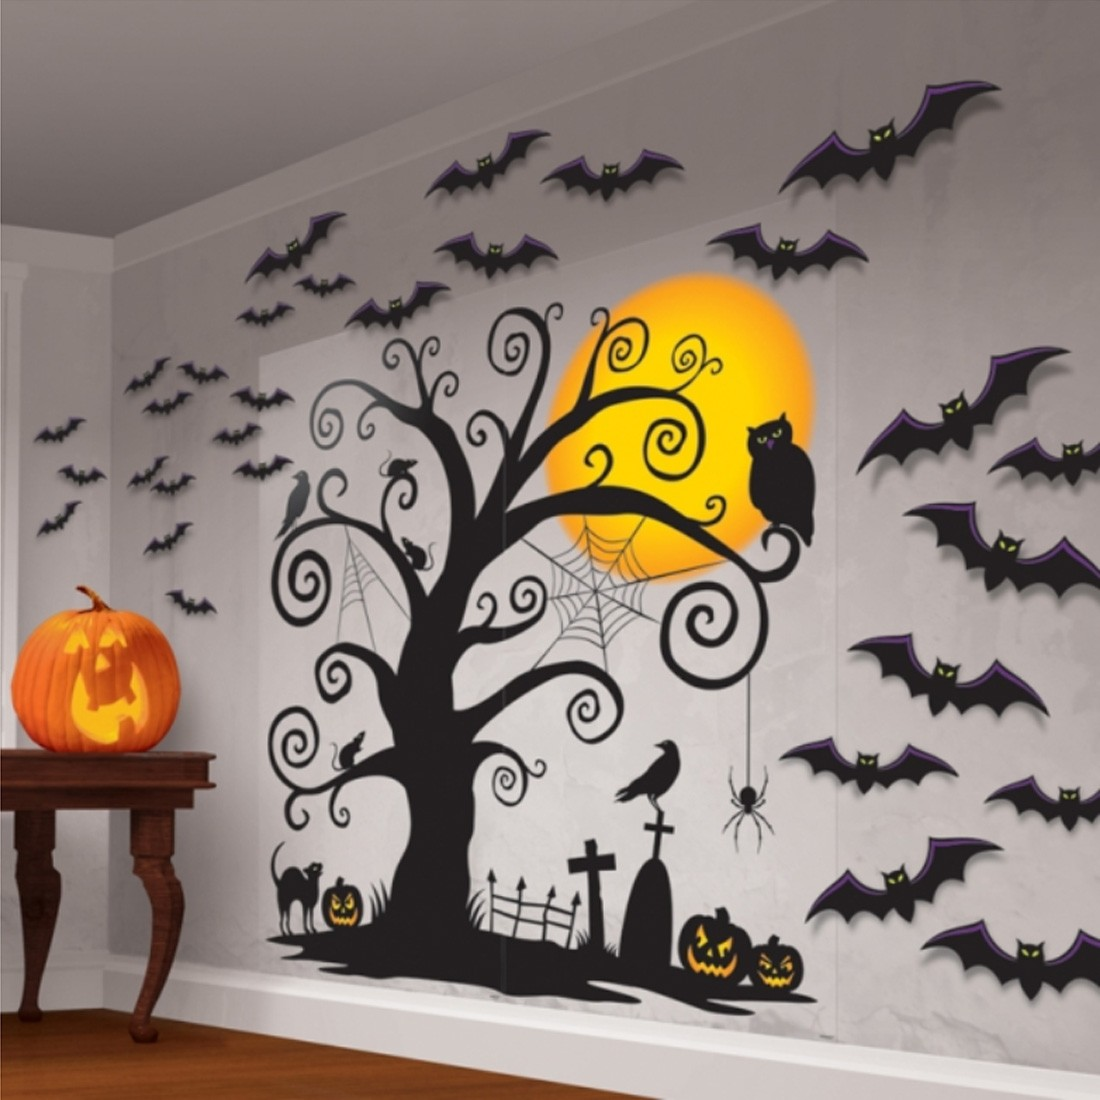 halloween wanddeko friedhof wand deko 32 tlg 7 99. Black Bedroom Furniture Sets. Home Design Ideas